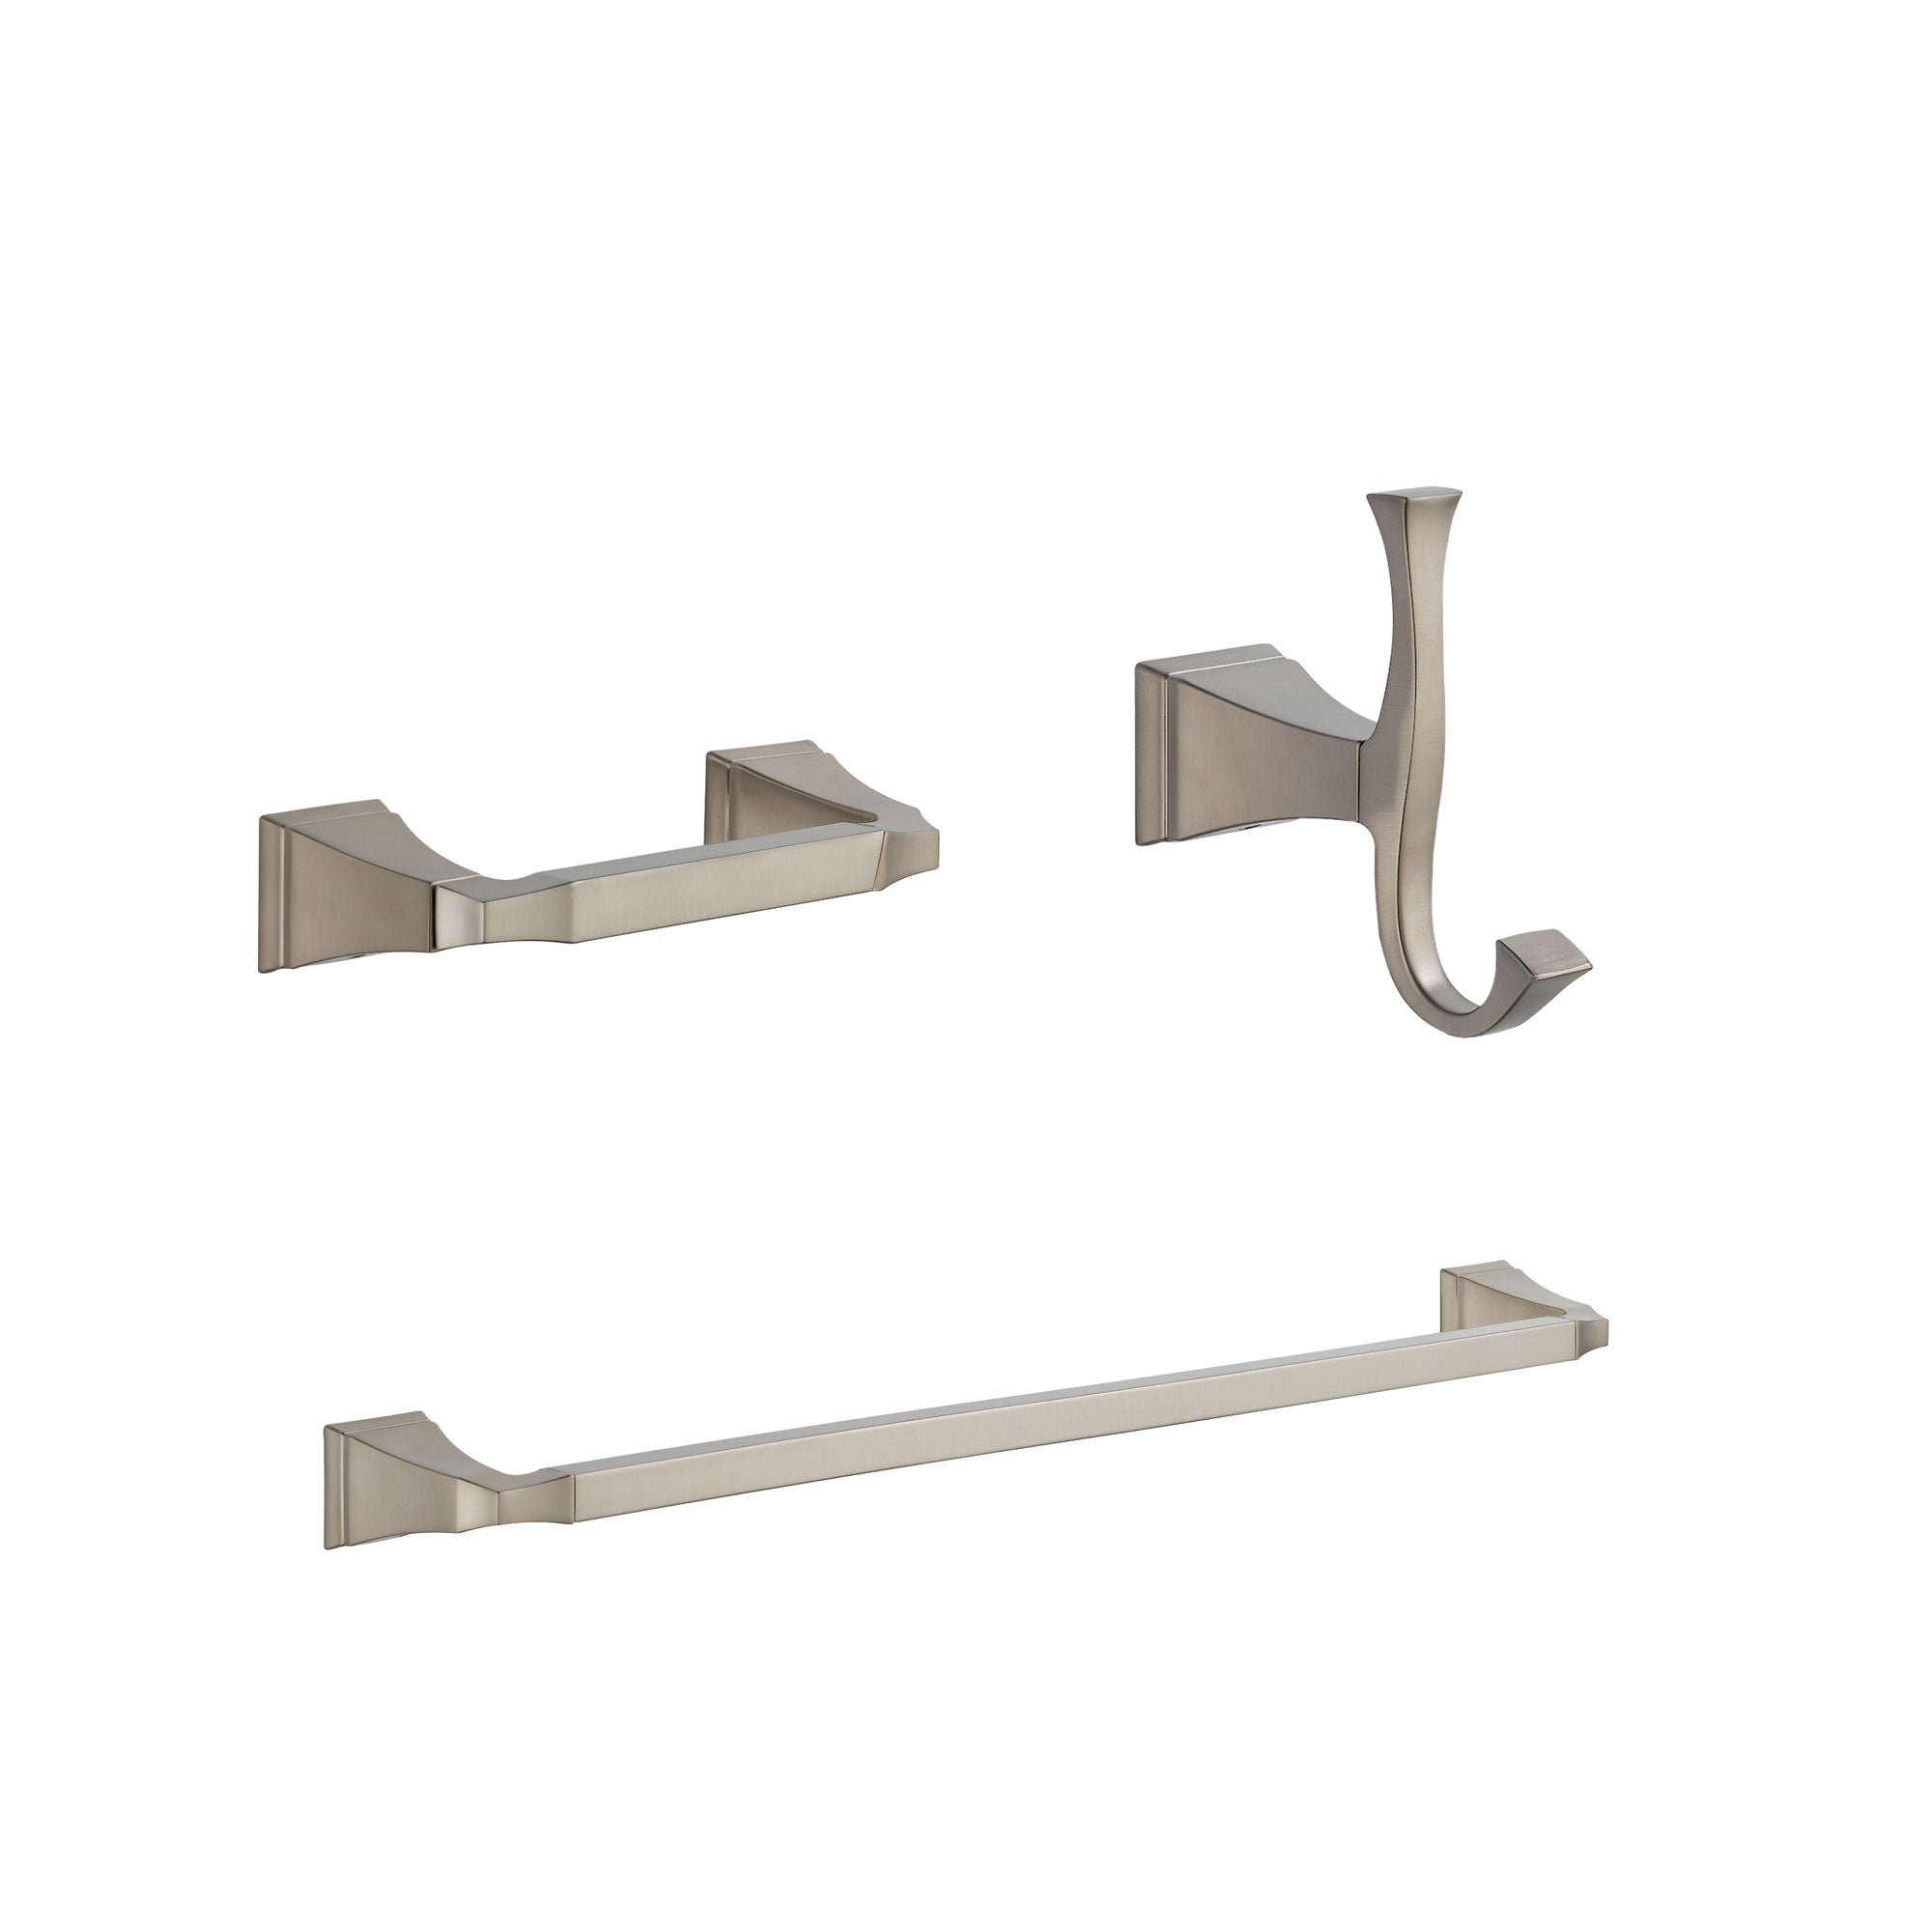 "Delta Dryden Stainless Steel Finish BASICS Bathroom Accessory Set Includes: 24"" Towel Bar, Toilet Paper Holder, and Robe Hook D10034AP"